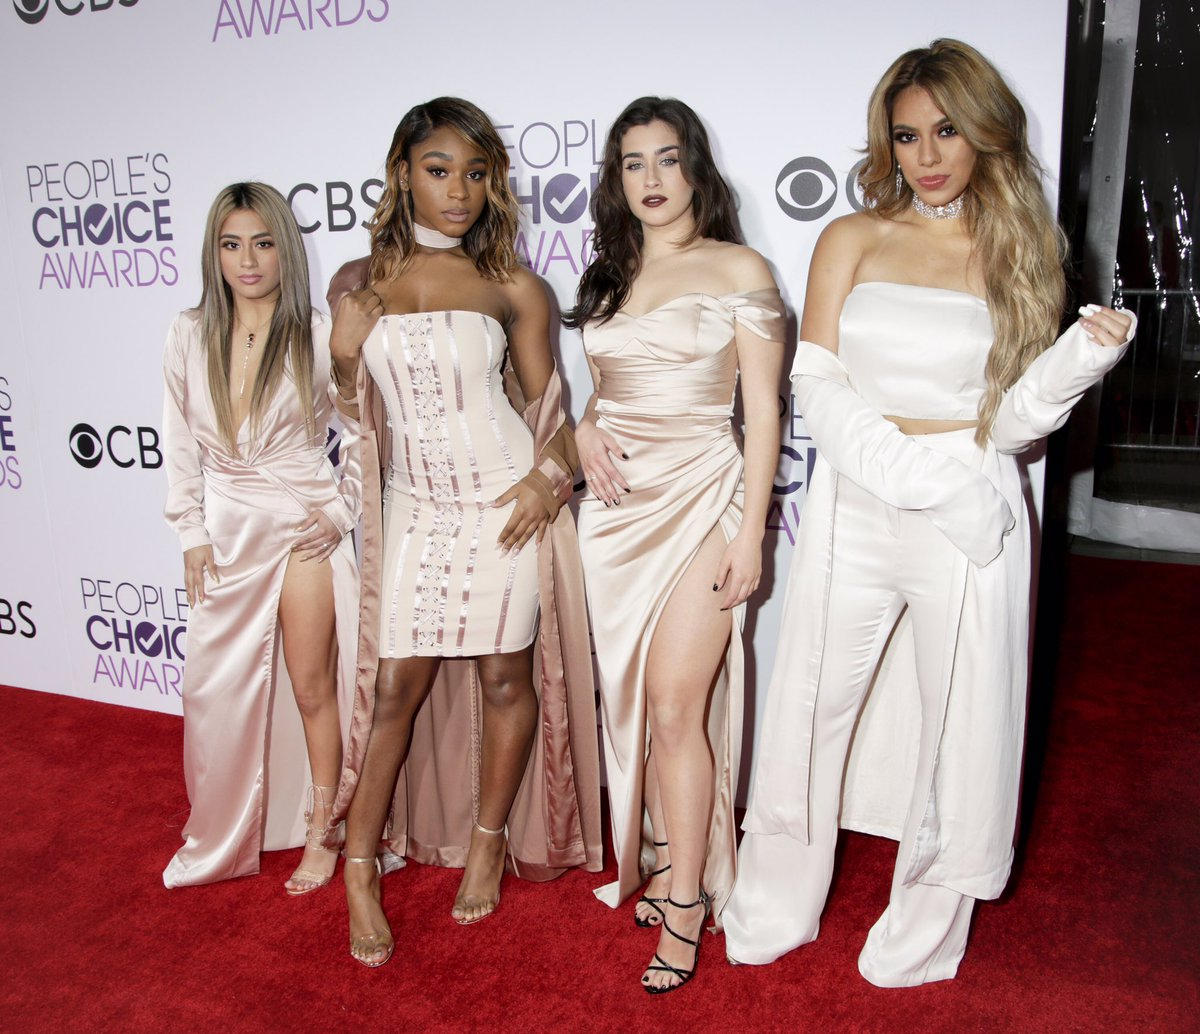 .@fifthharmony are here to work, work, work it at the #PCAs! Get ready for their performance https://t.co/zCEeS9RU1Y